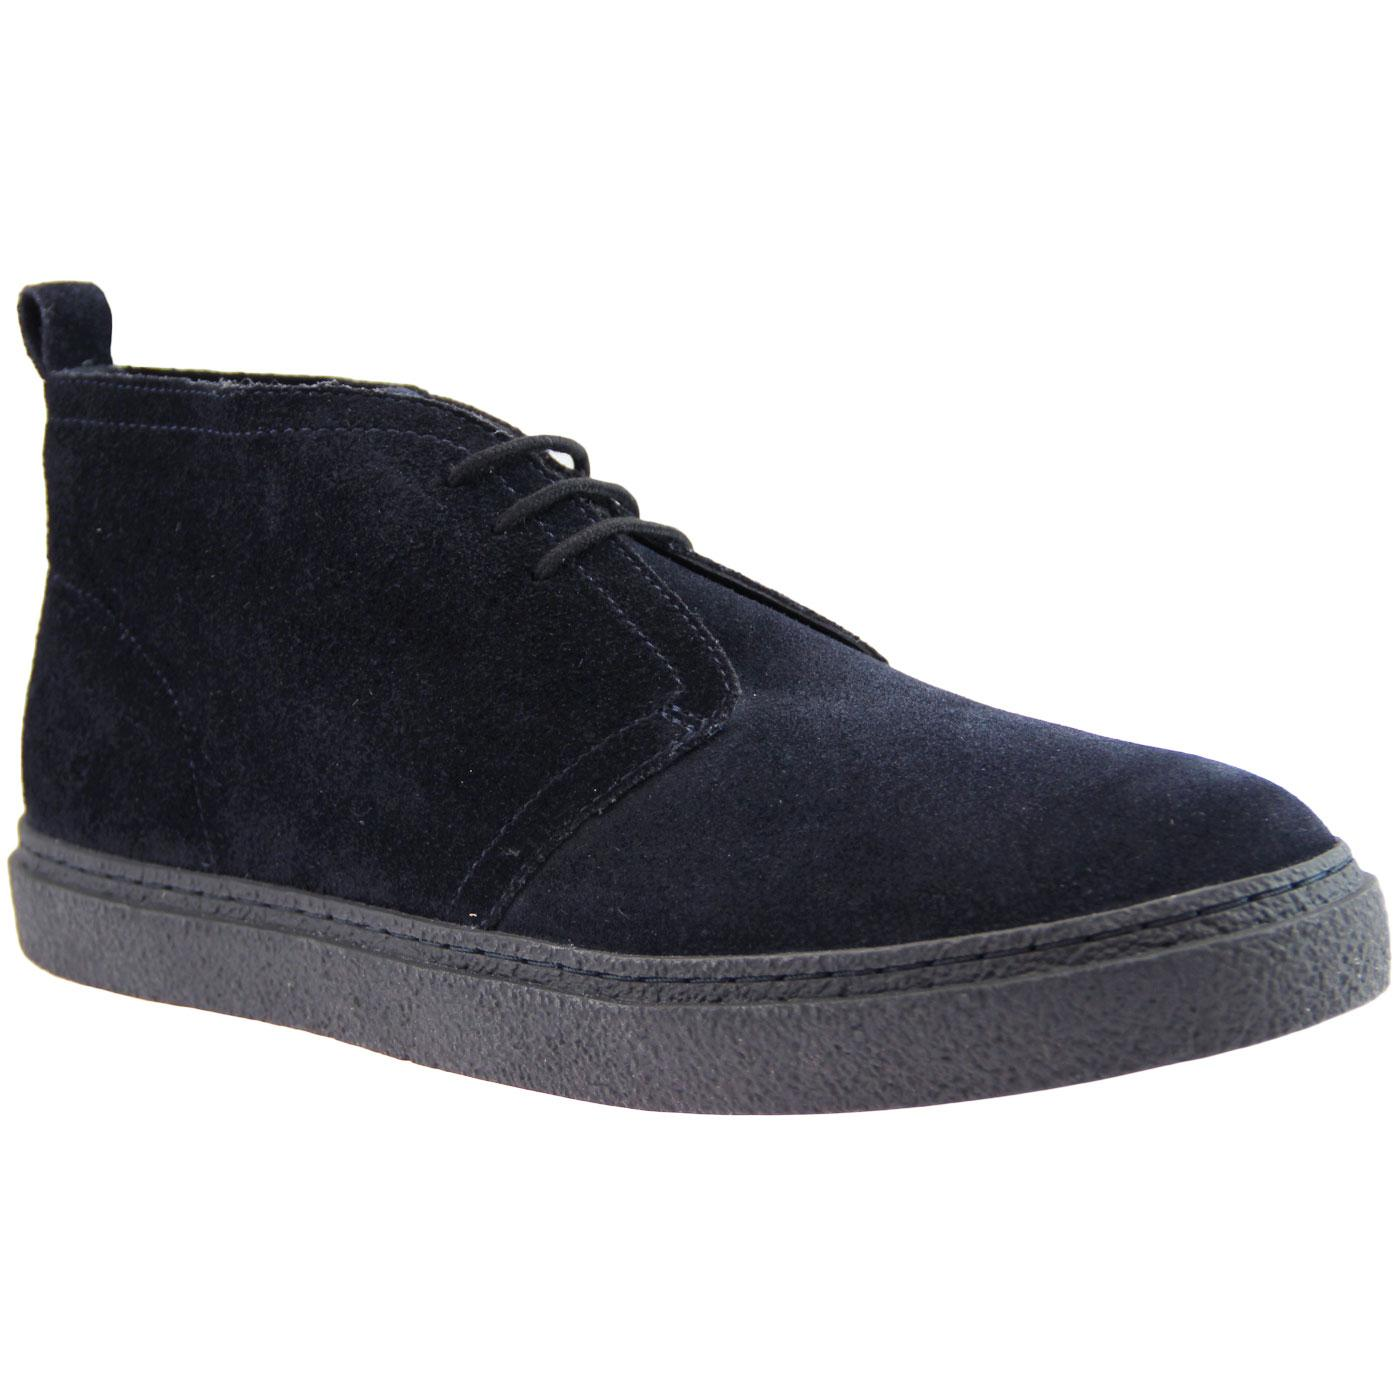 Hawley FRED PERRY Retro Mod Desert Boots - Navy